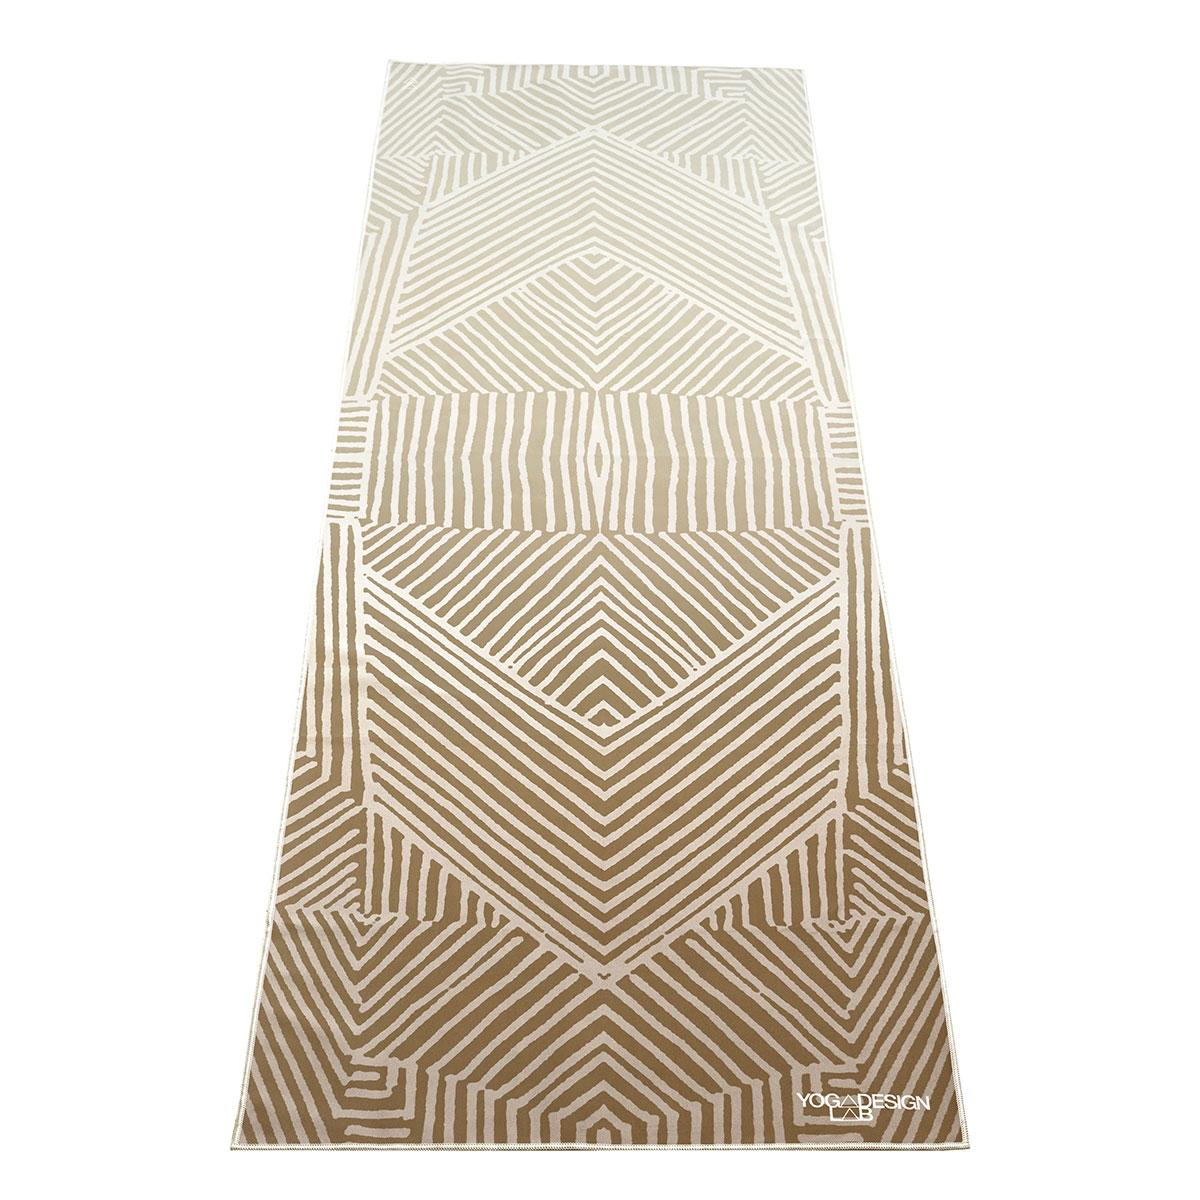 PET Mat Towel - Optical Gold